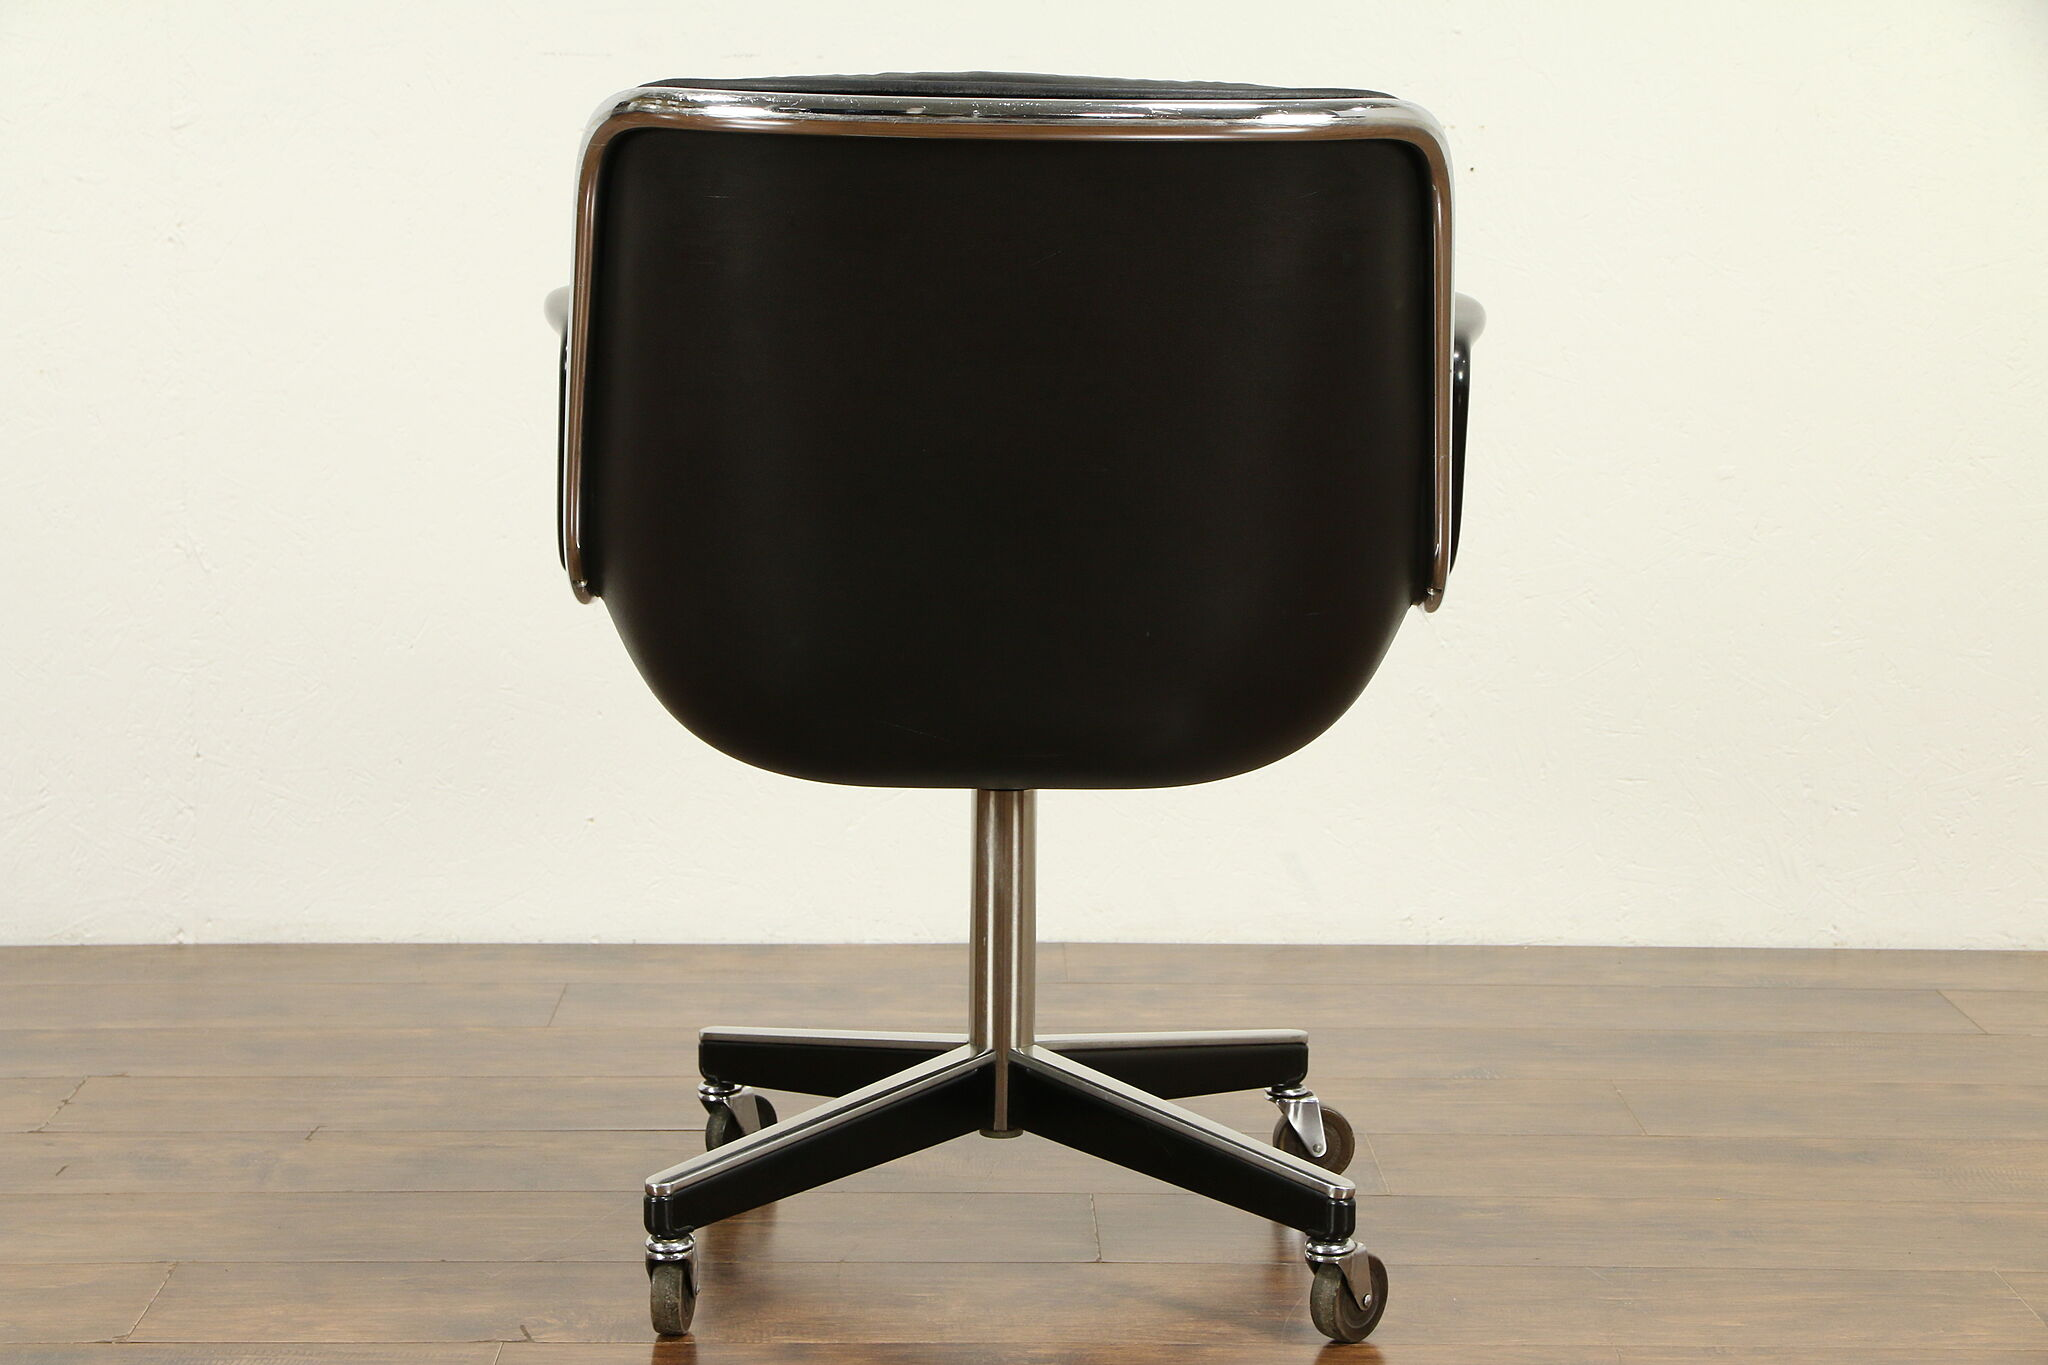 Sold Knoll Midcentury Vintage Swivel Adjustable Leather Chrome Desk Chair 31781 Harp Gallery Antiques Furniture